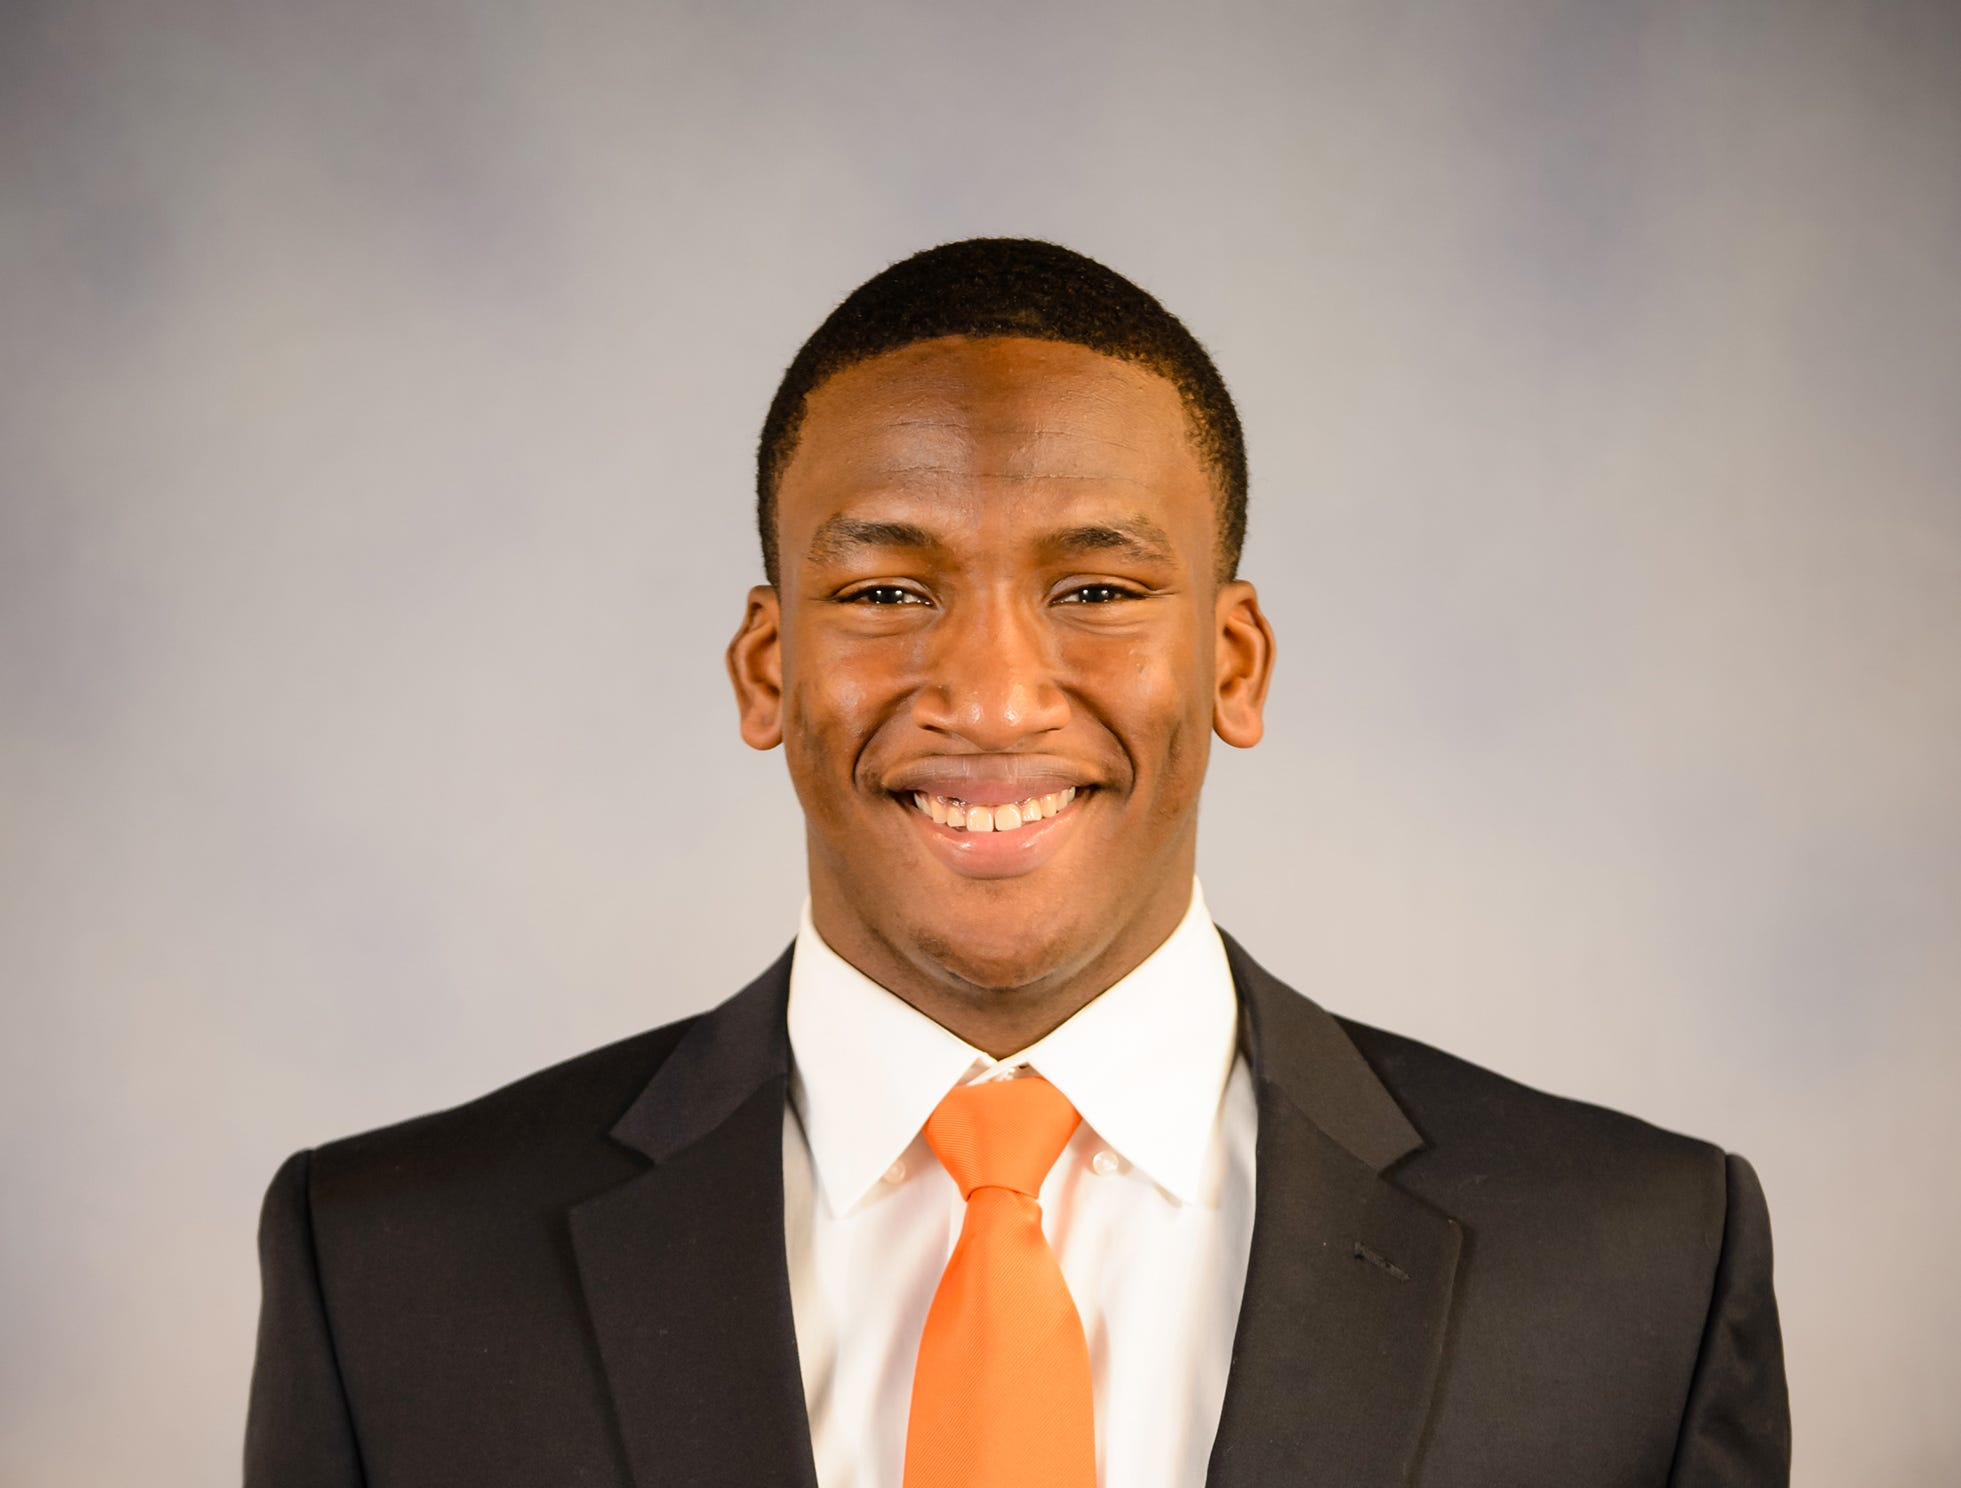 Clemson football December graduate Clelin Ferrell